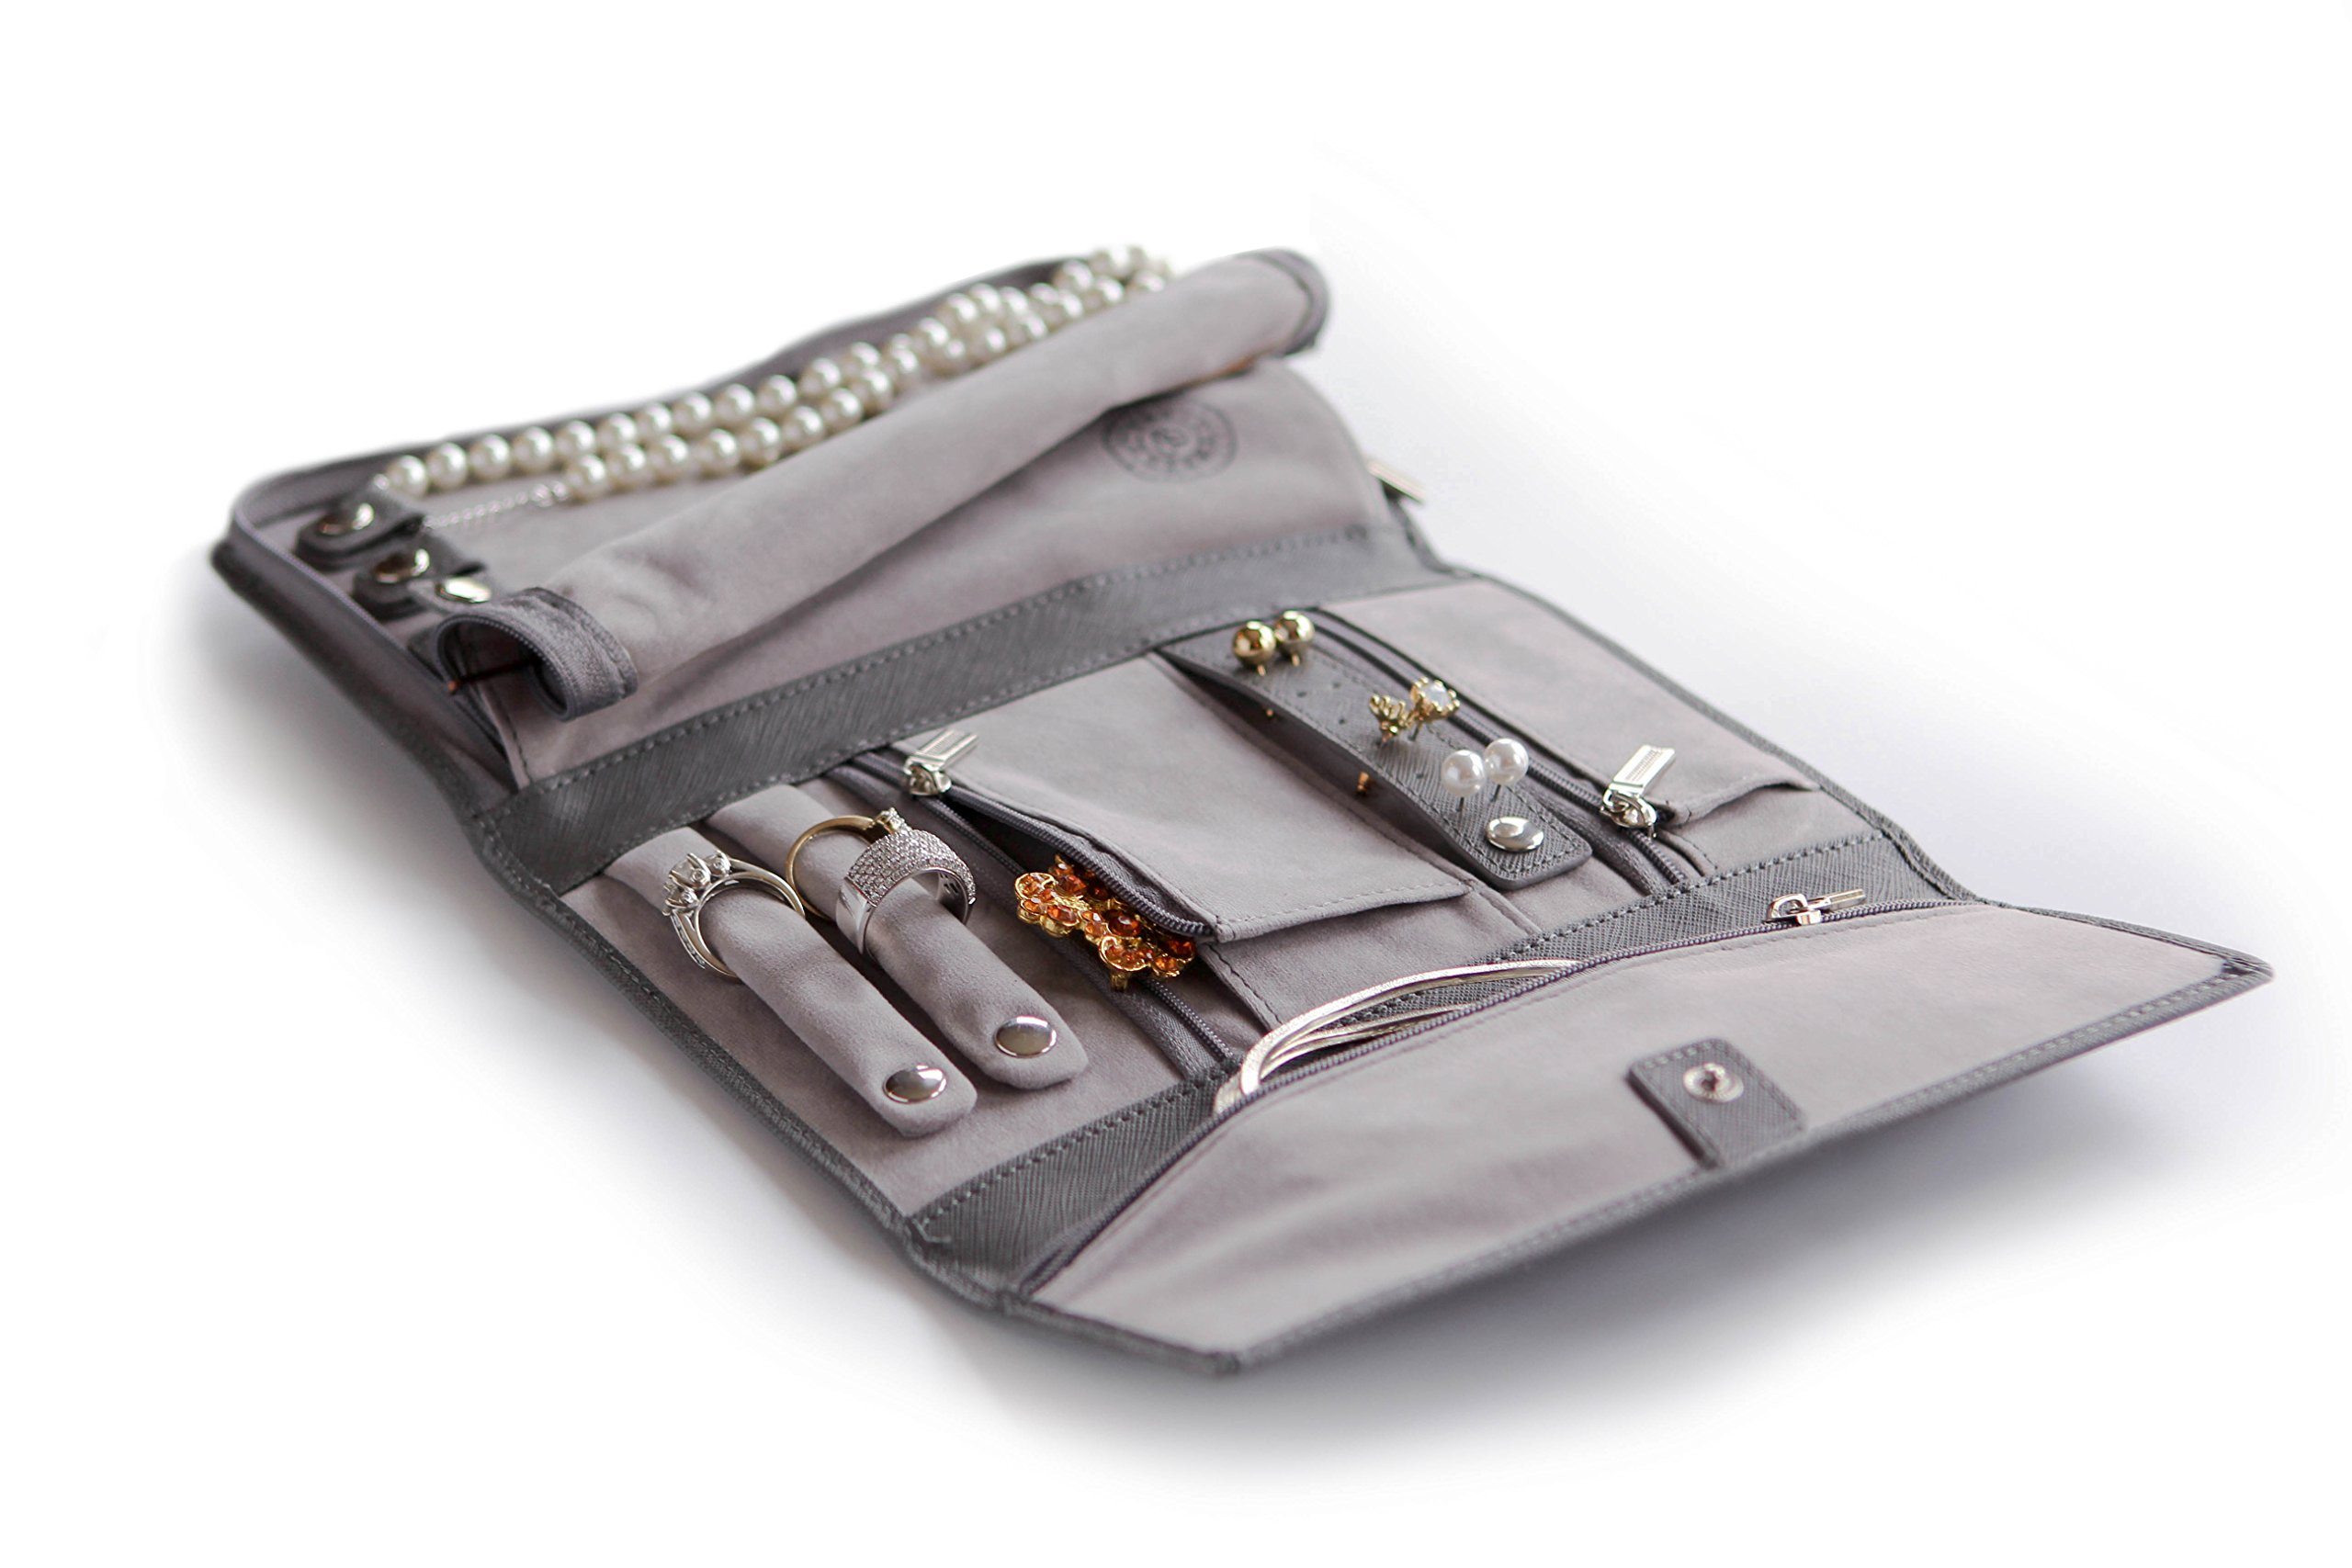 Saffiano Leather Travel Jewelry Case - Jewelry Organizer [Petite] by Case Elegance by case Elegance (Image #5)